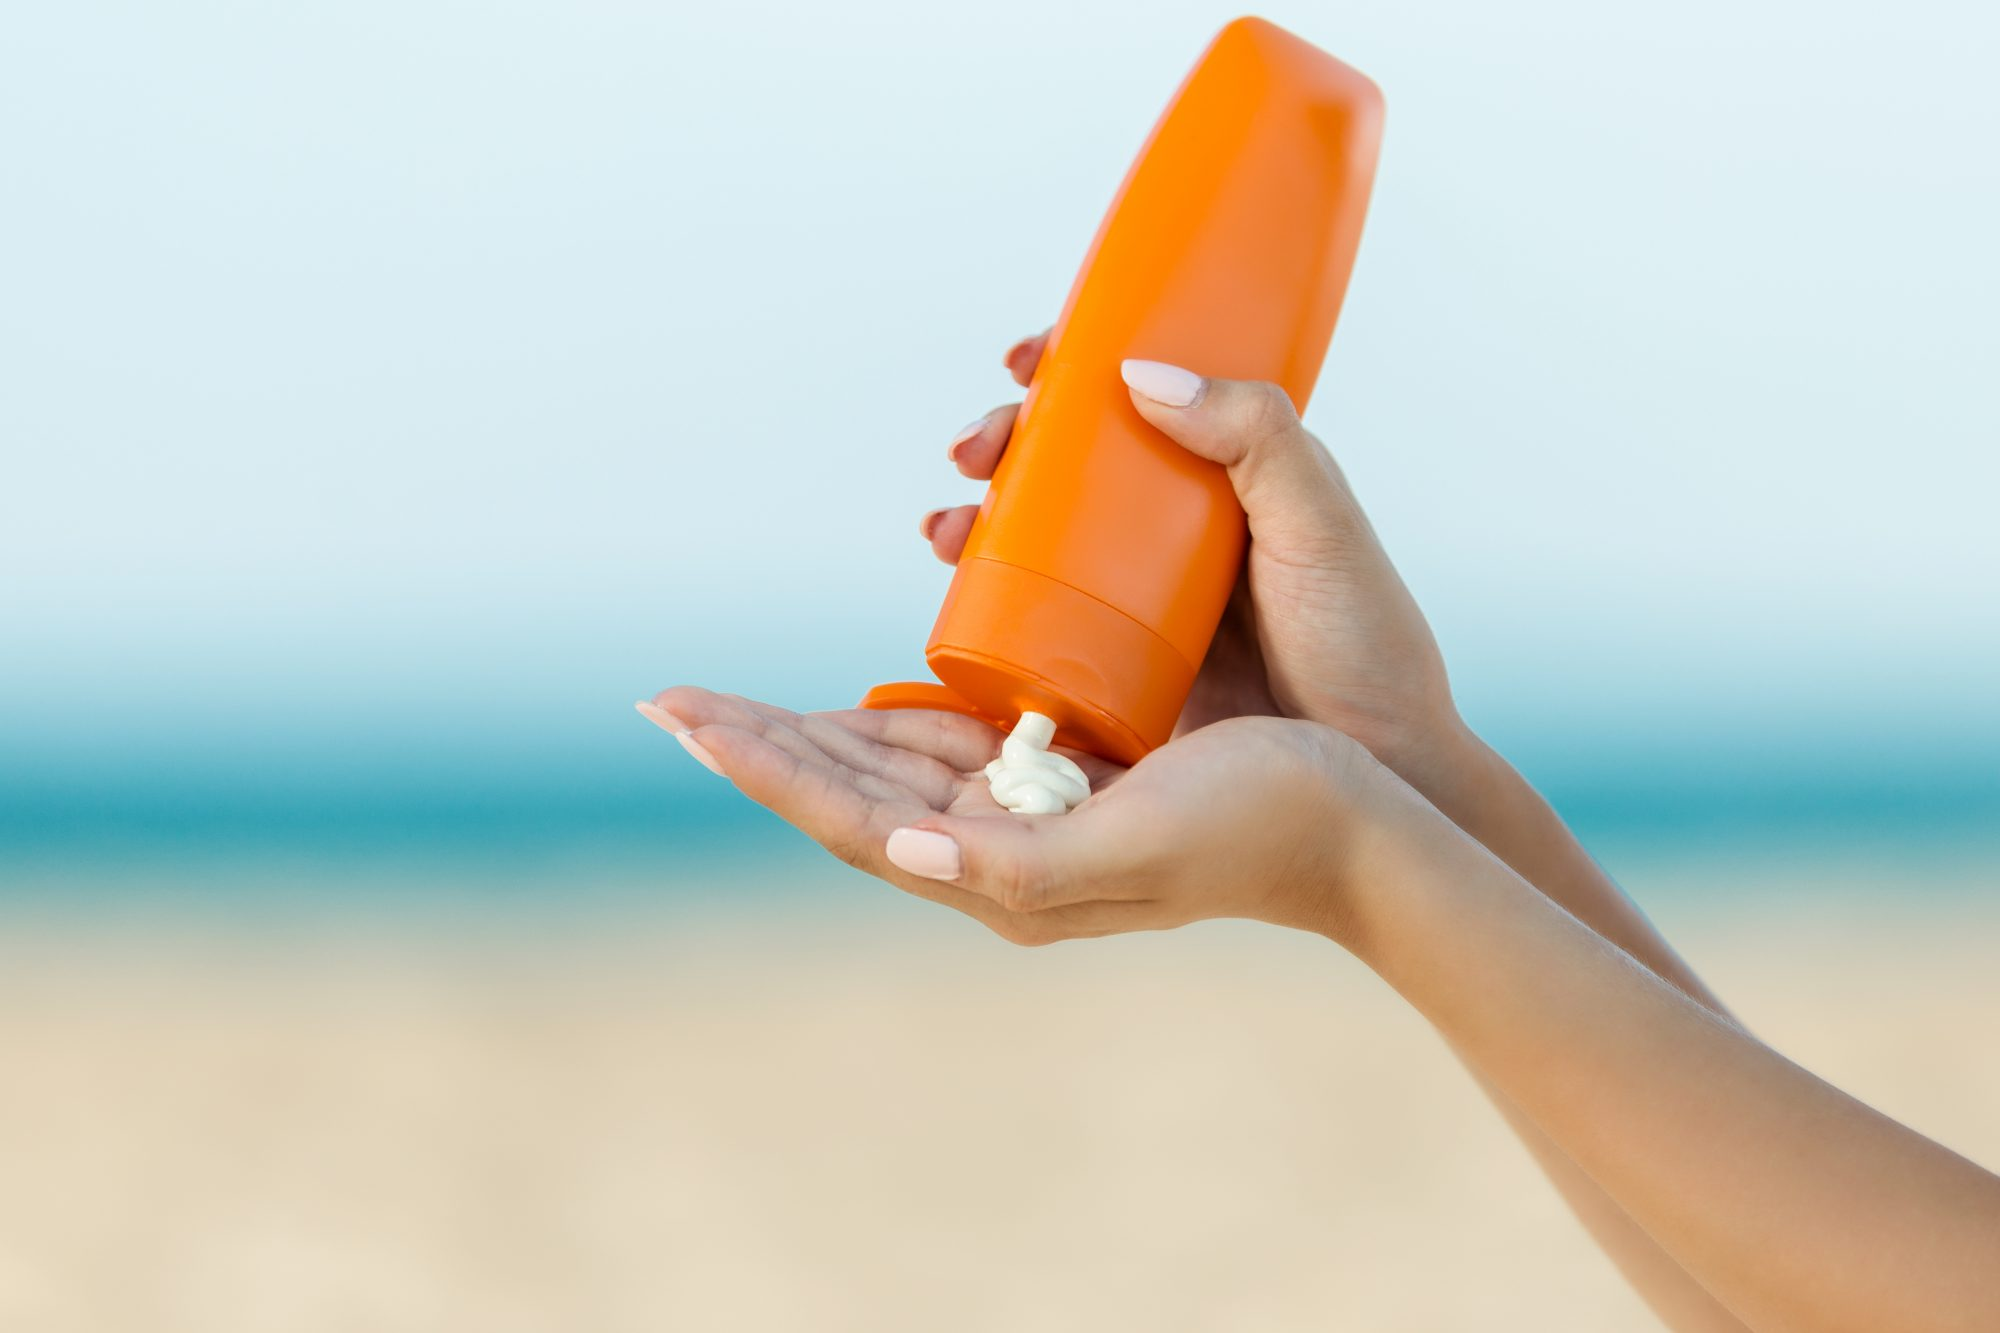 woman squeezing sunscreen in to hand